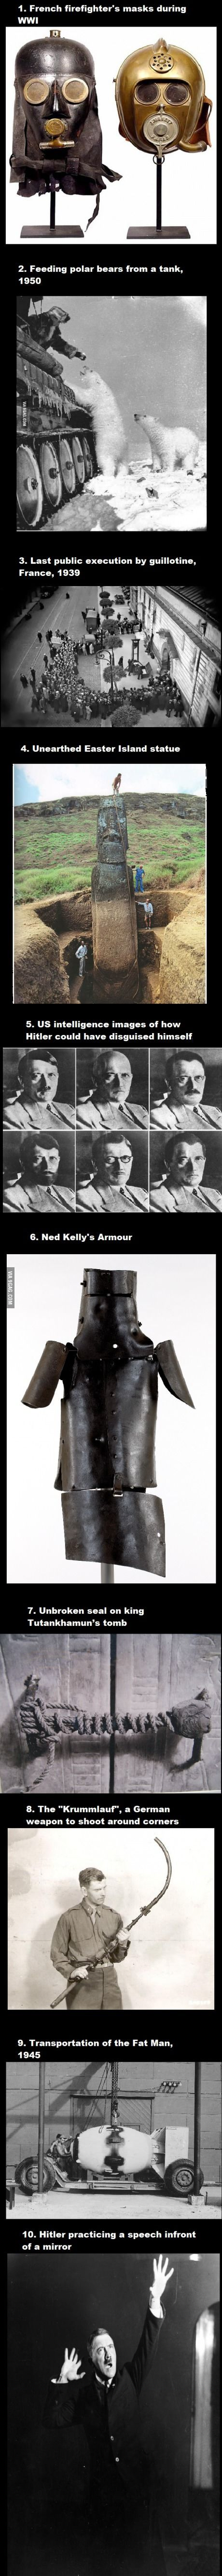 687 best history images on pinterest fun facts interesting